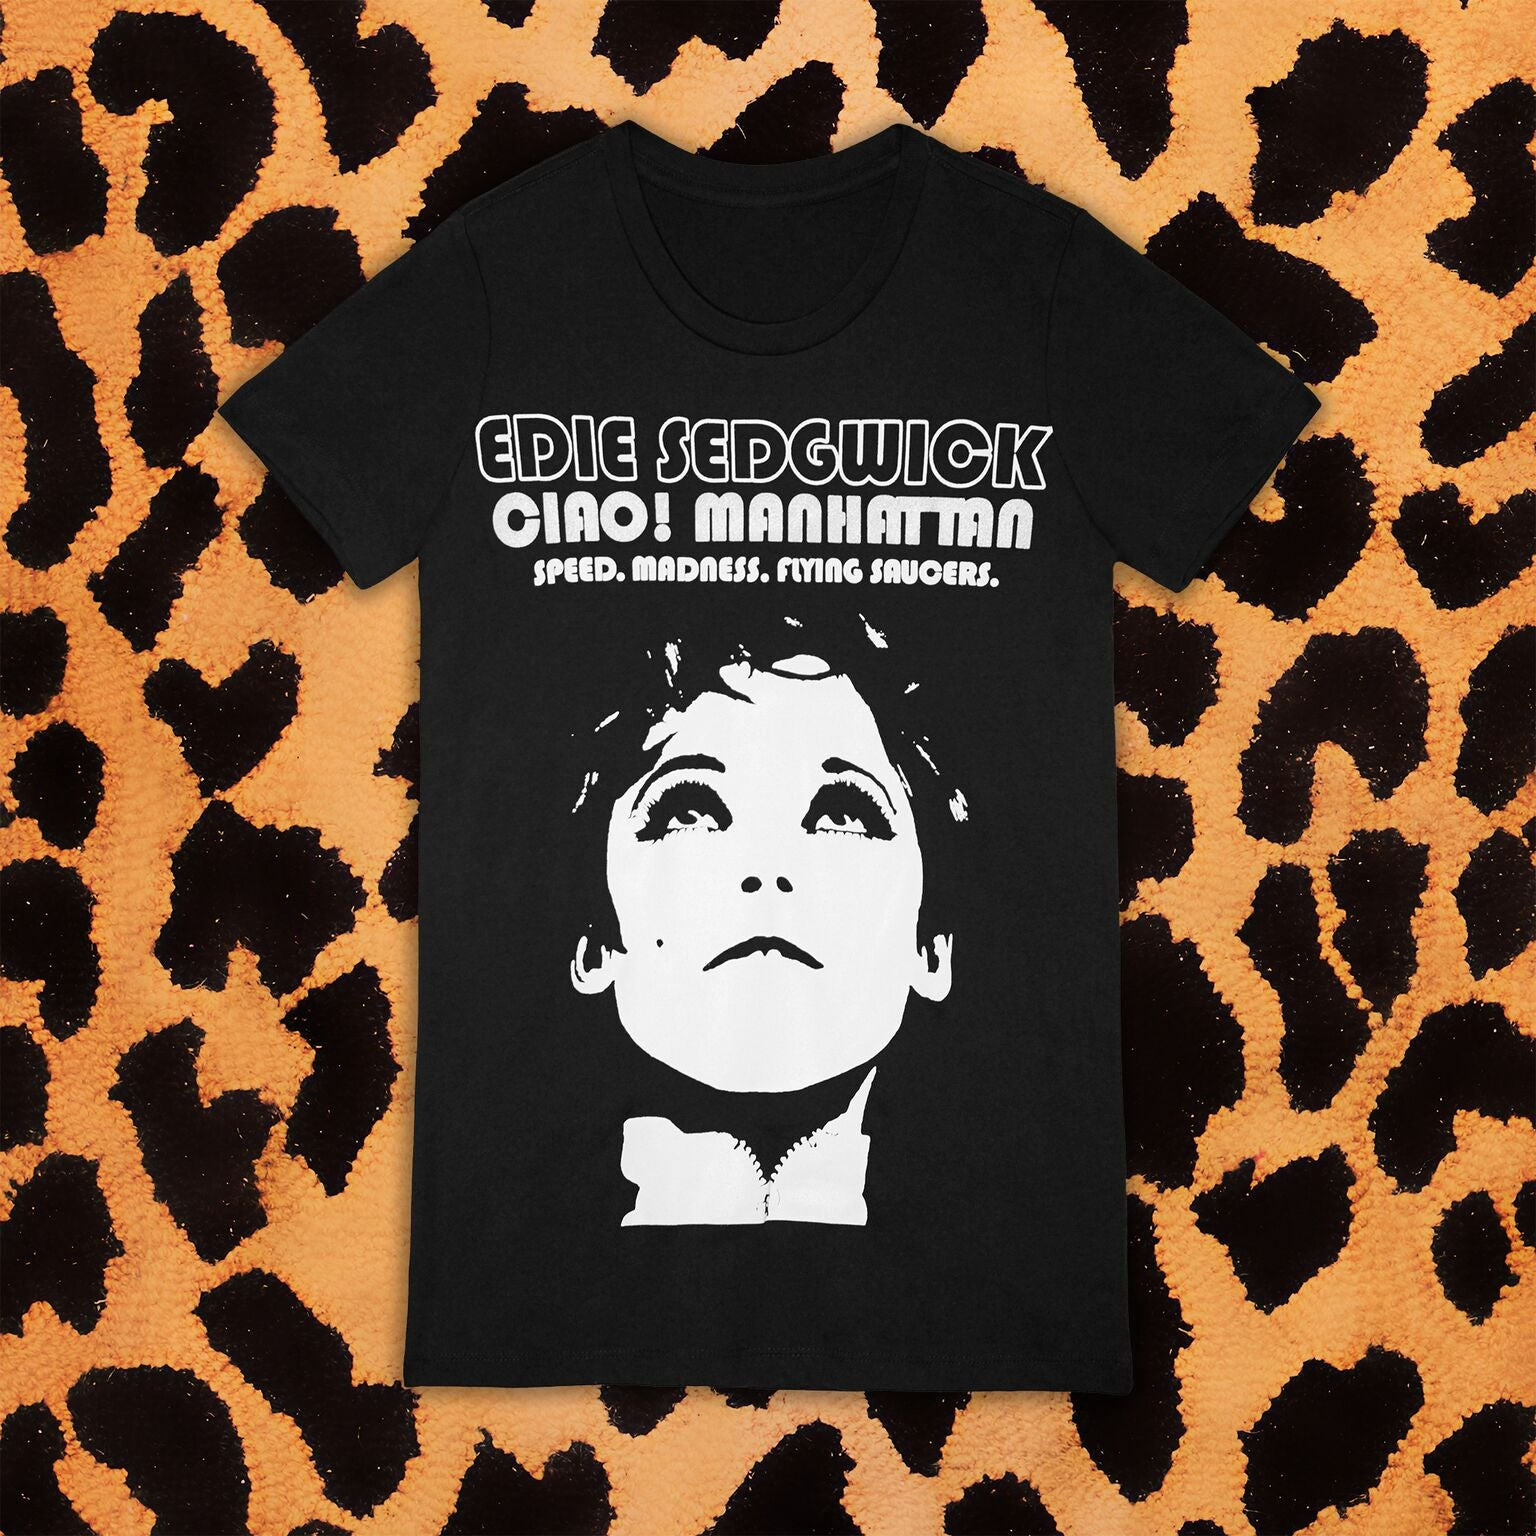 "EDIE ""CIAO! MANHATTAN"" T-SHIRT (WOMENS)"